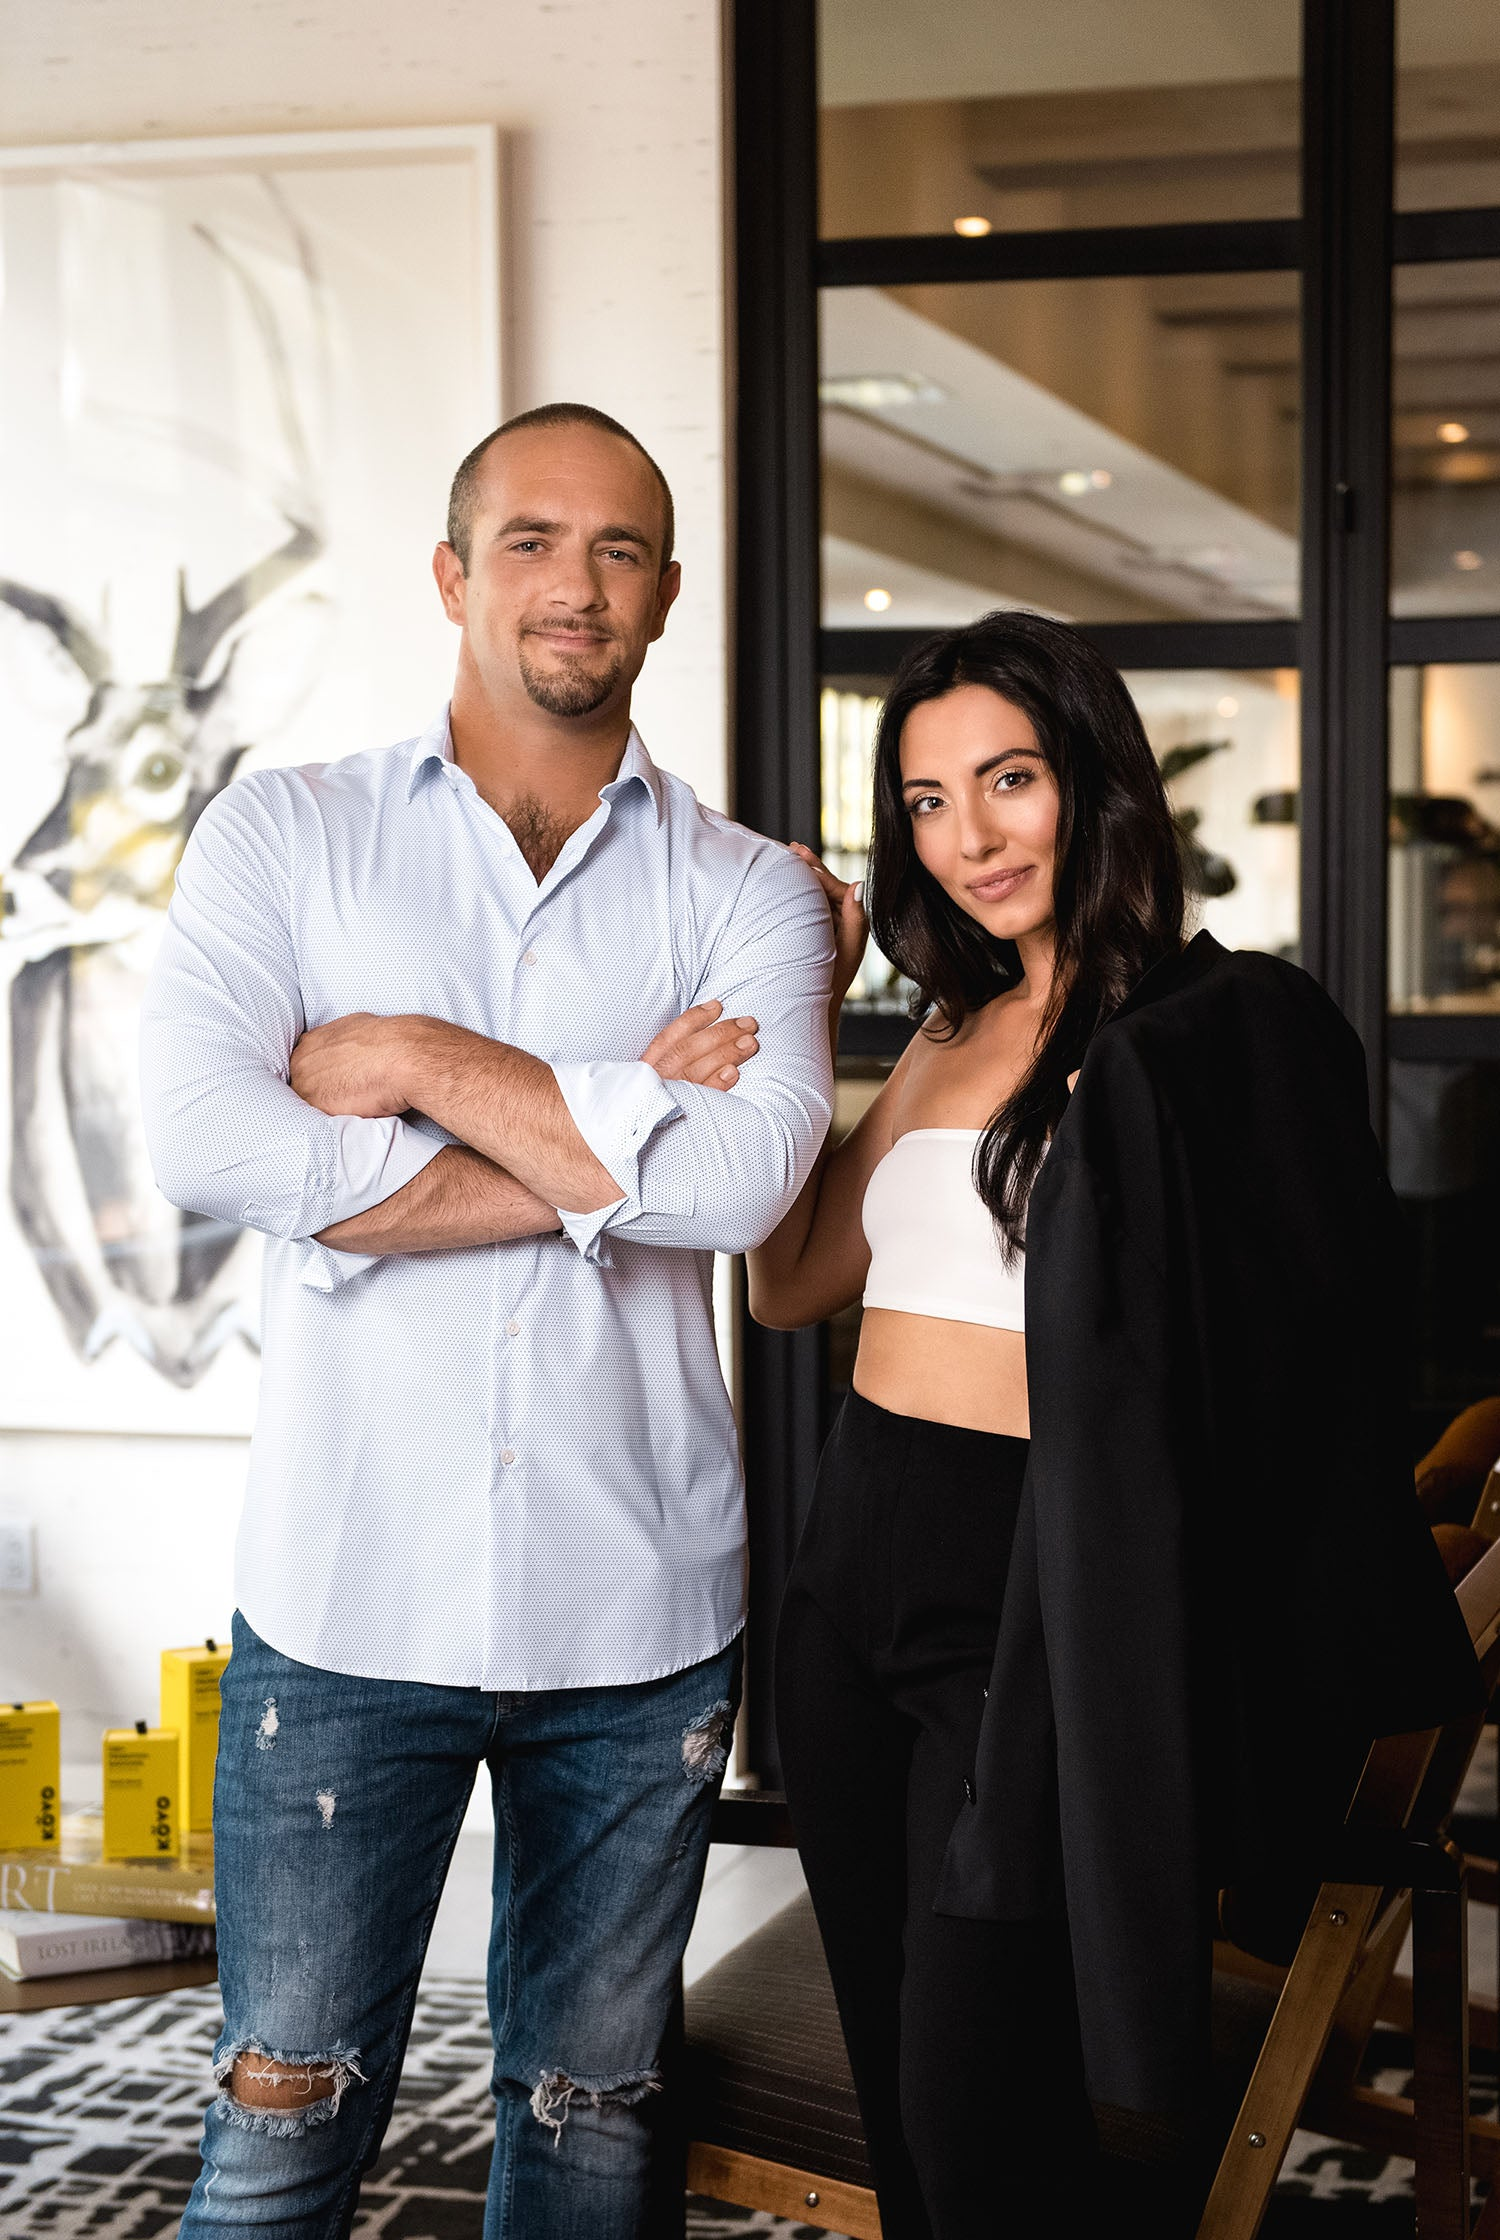 Founder Michael Sette Co-founder Jessica Bongiorno